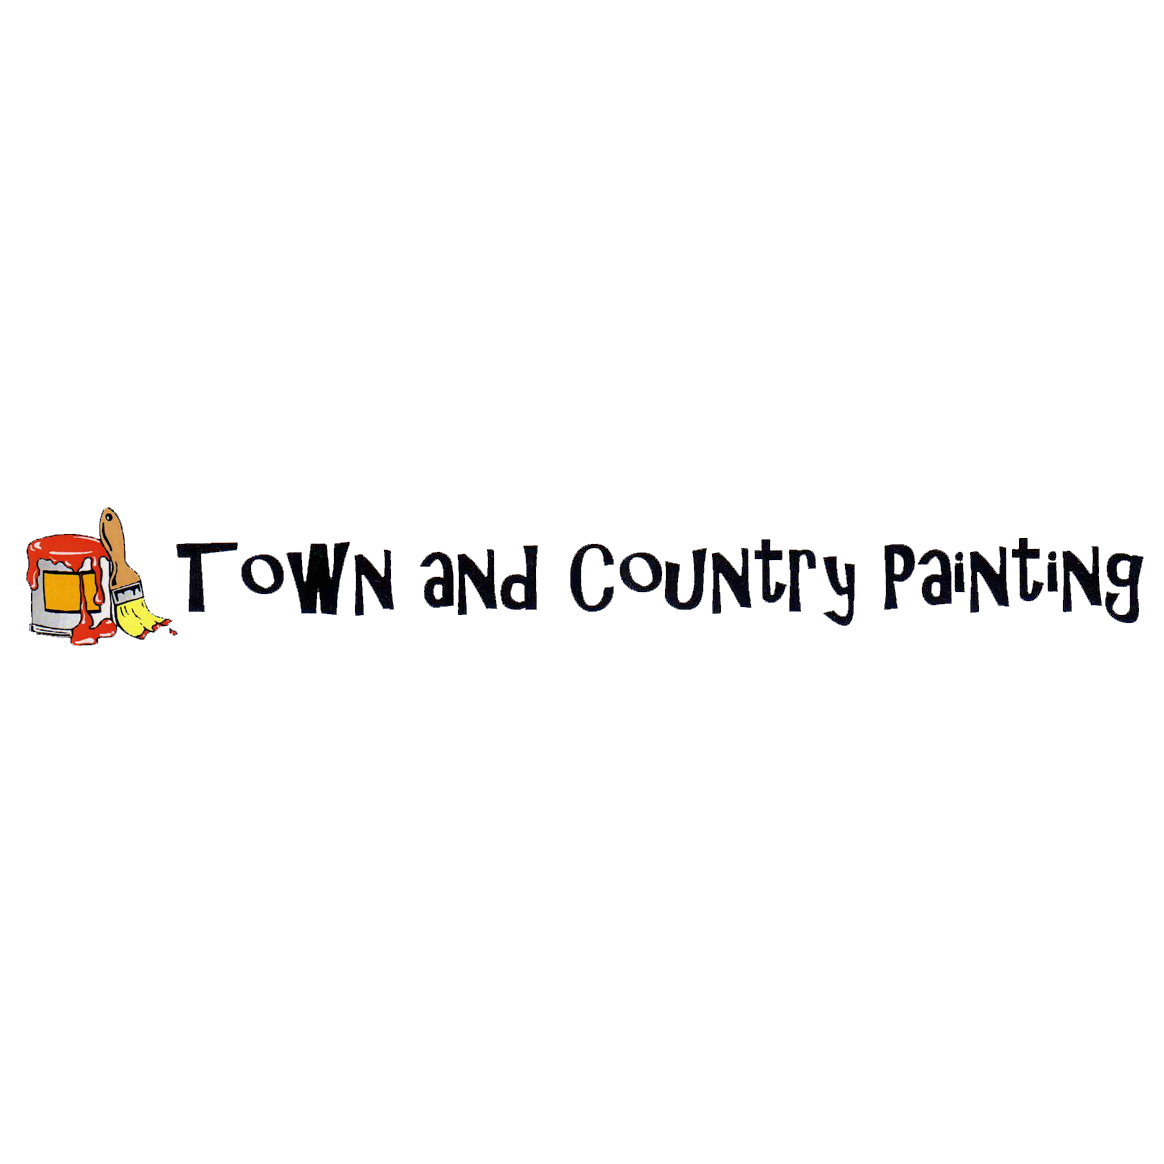 Town and Country Painting